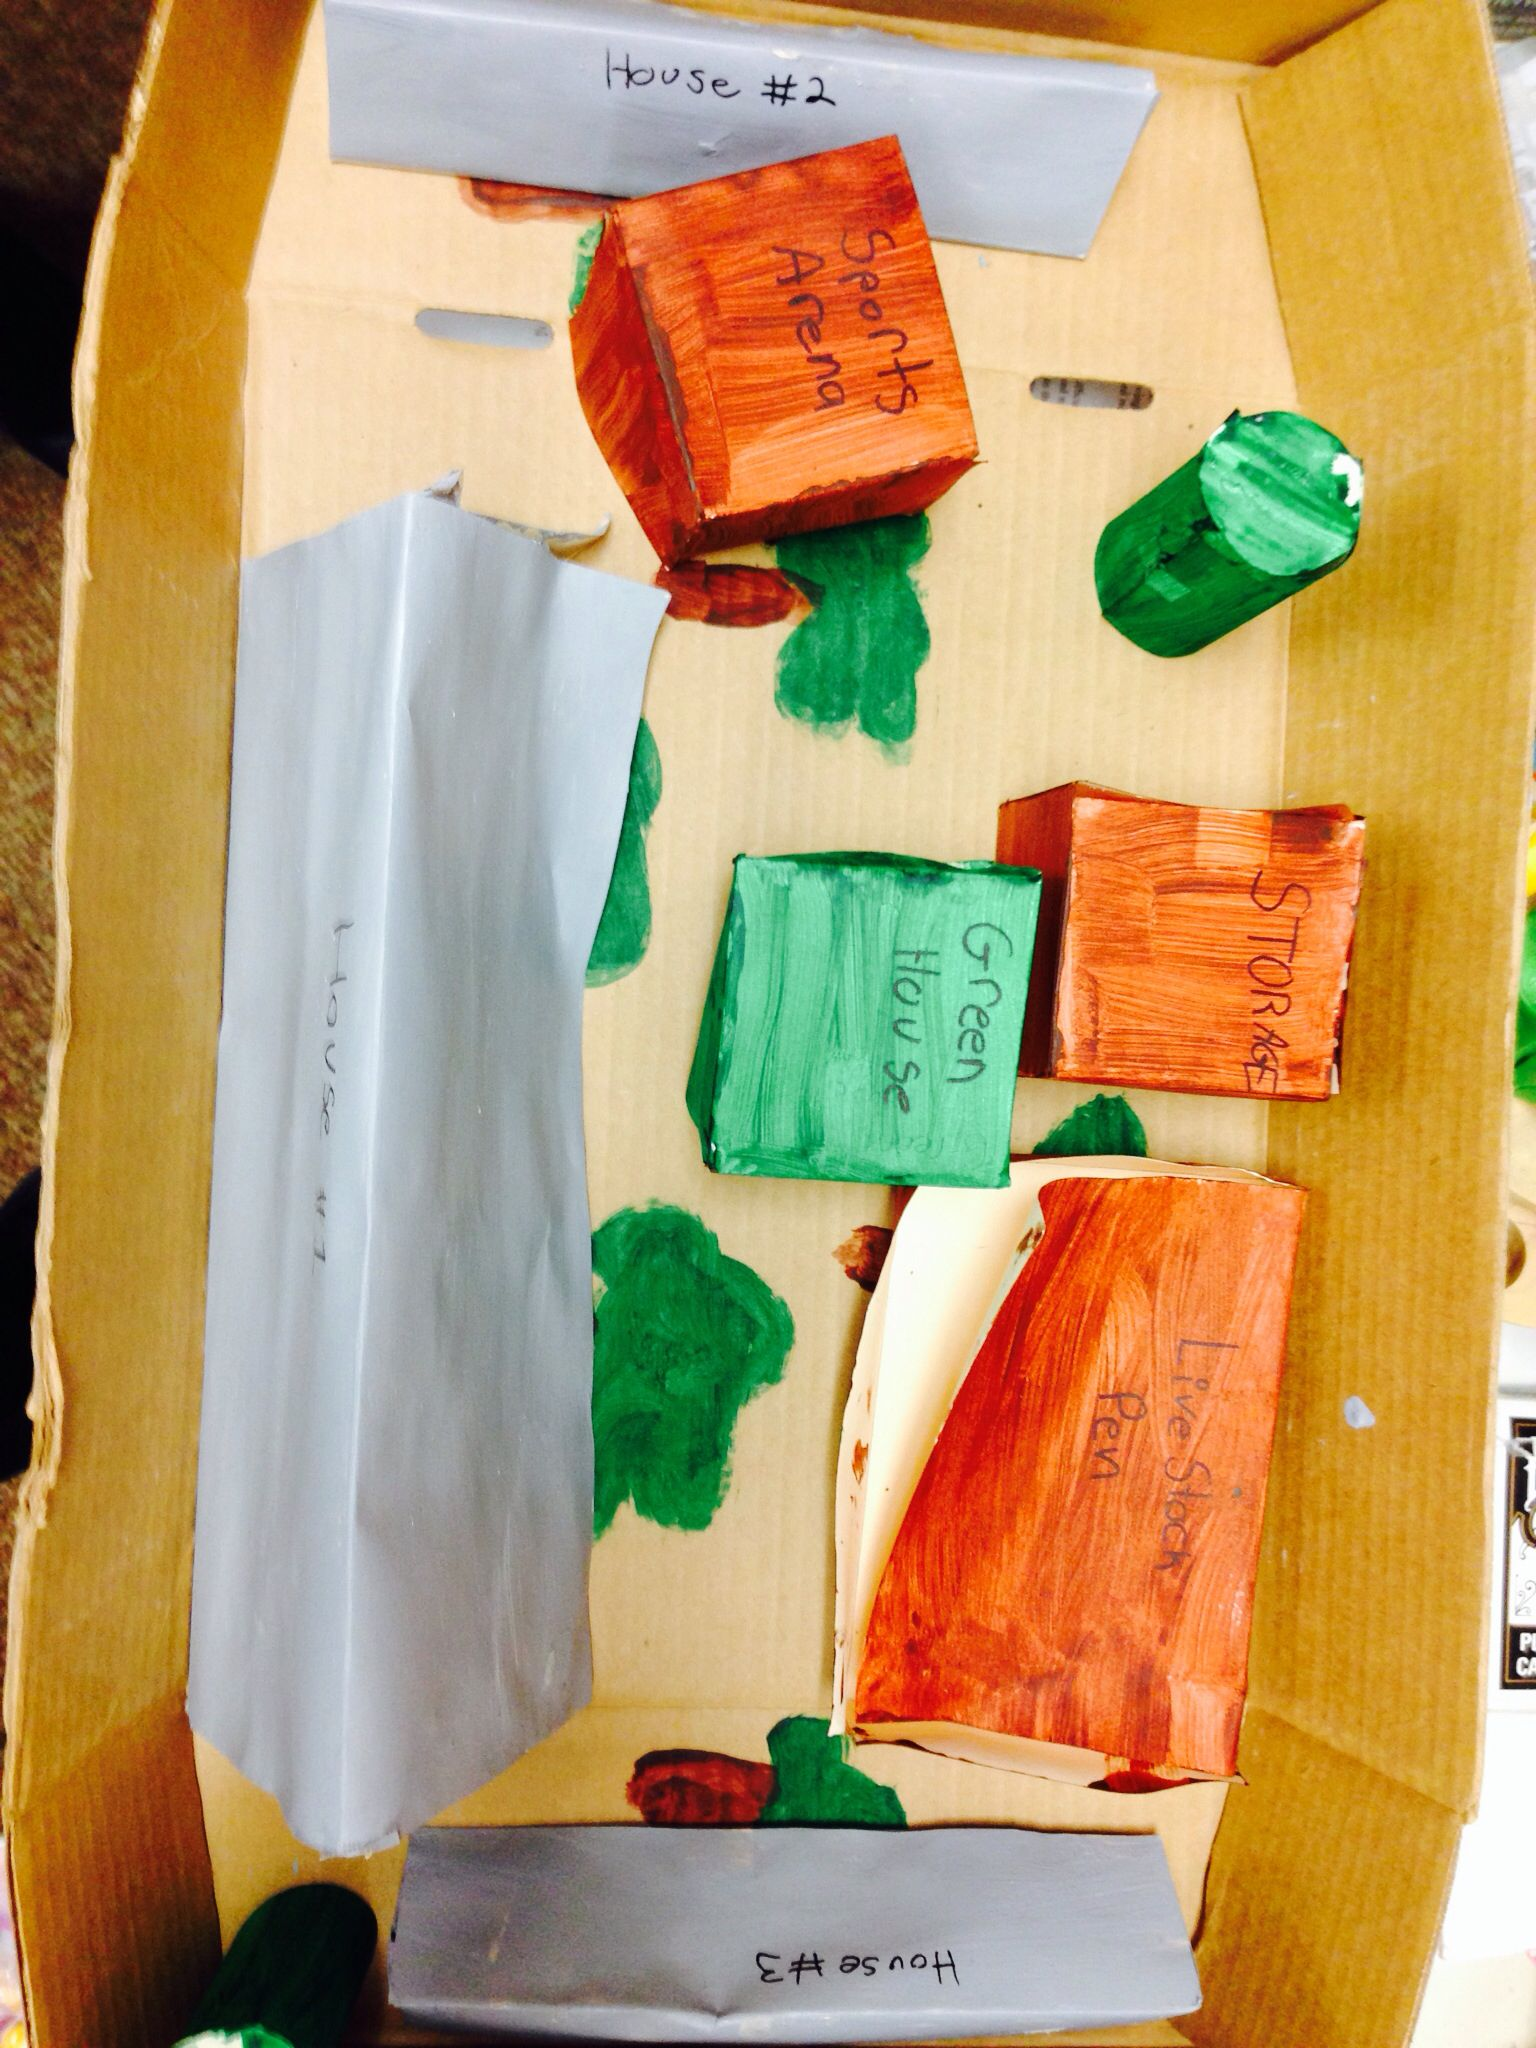 Grade 8 Colonies On Mars Project Covers Math Outcomes In Surface Area And Volume Geometry Projects Project Based Learning Math Geometry [ 2048 x 1536 Pixel ]